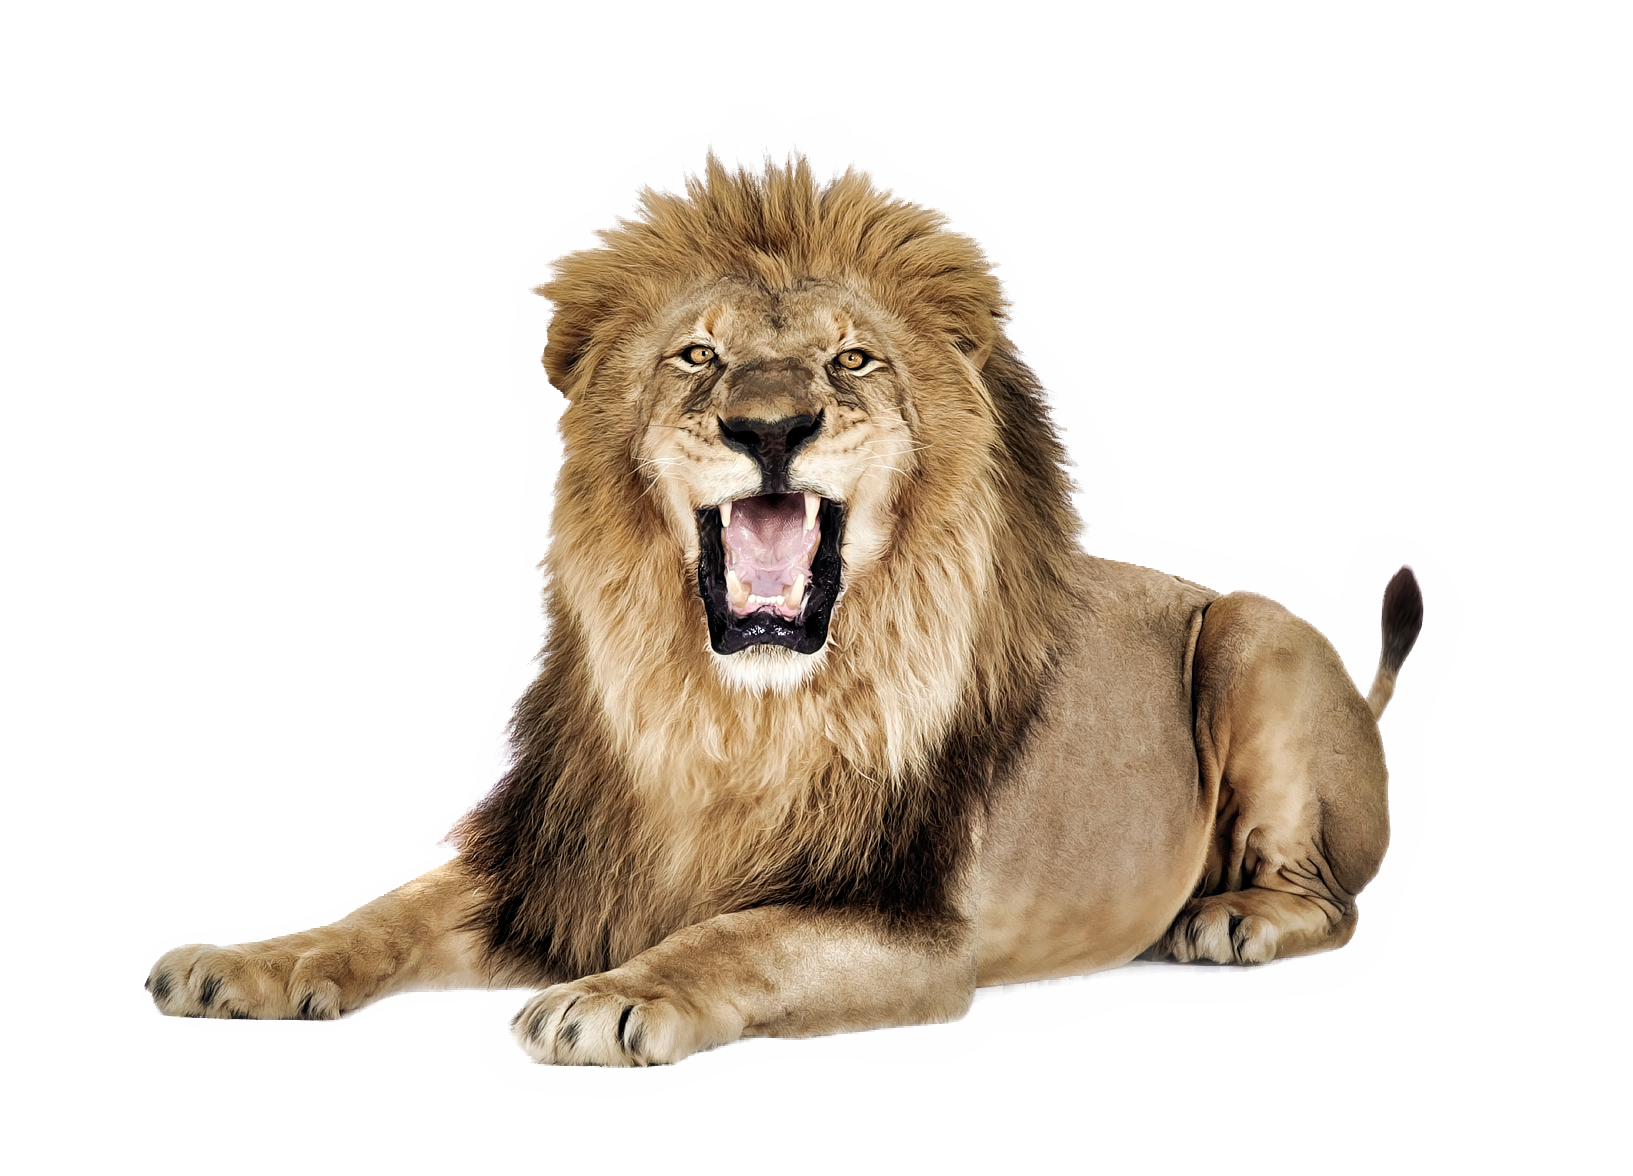 Lion PNG image, free image do